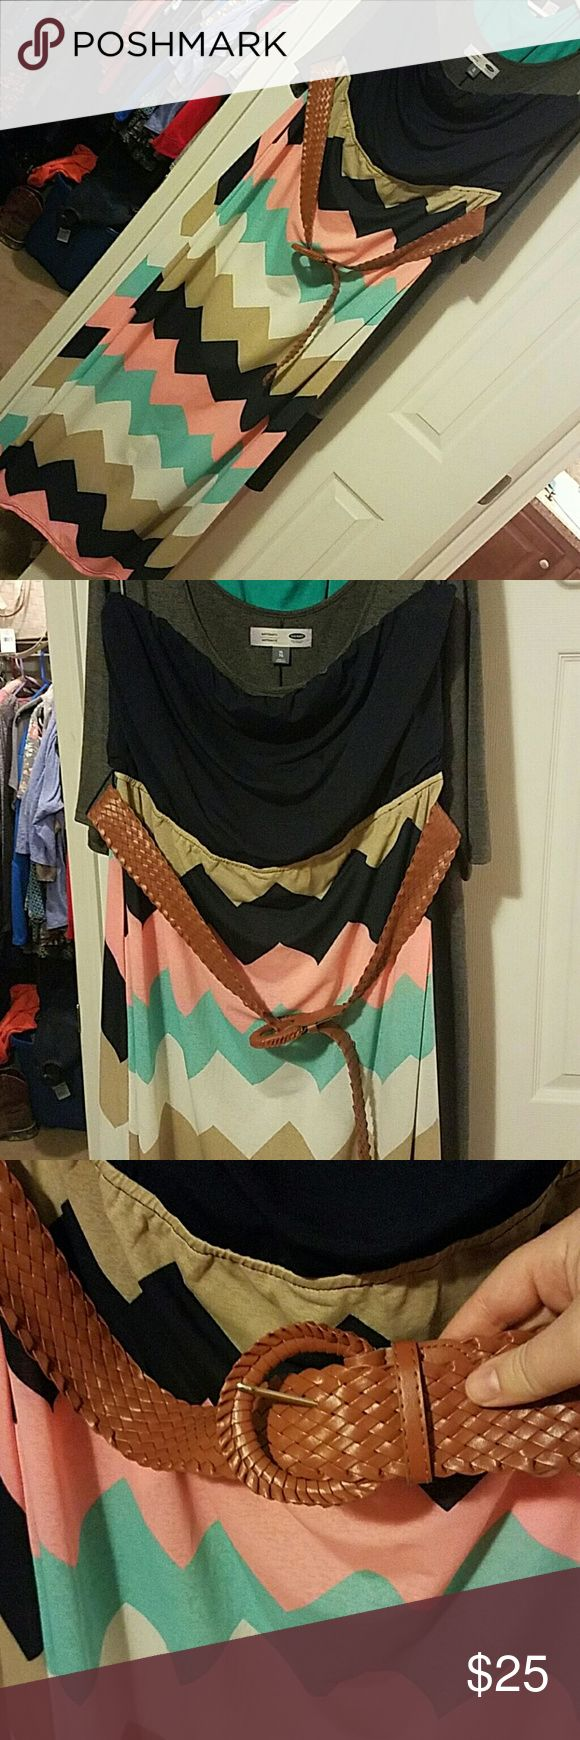 Strapless dress 2x Excellent condition strapless dress. 2x. Rue 21+. Chevron print. Navy top. Top slightly drapes and is very flattering. Brown belt included. Perfect for the beach, summer wedding, going out.... Rue 21 Dresses Strapless